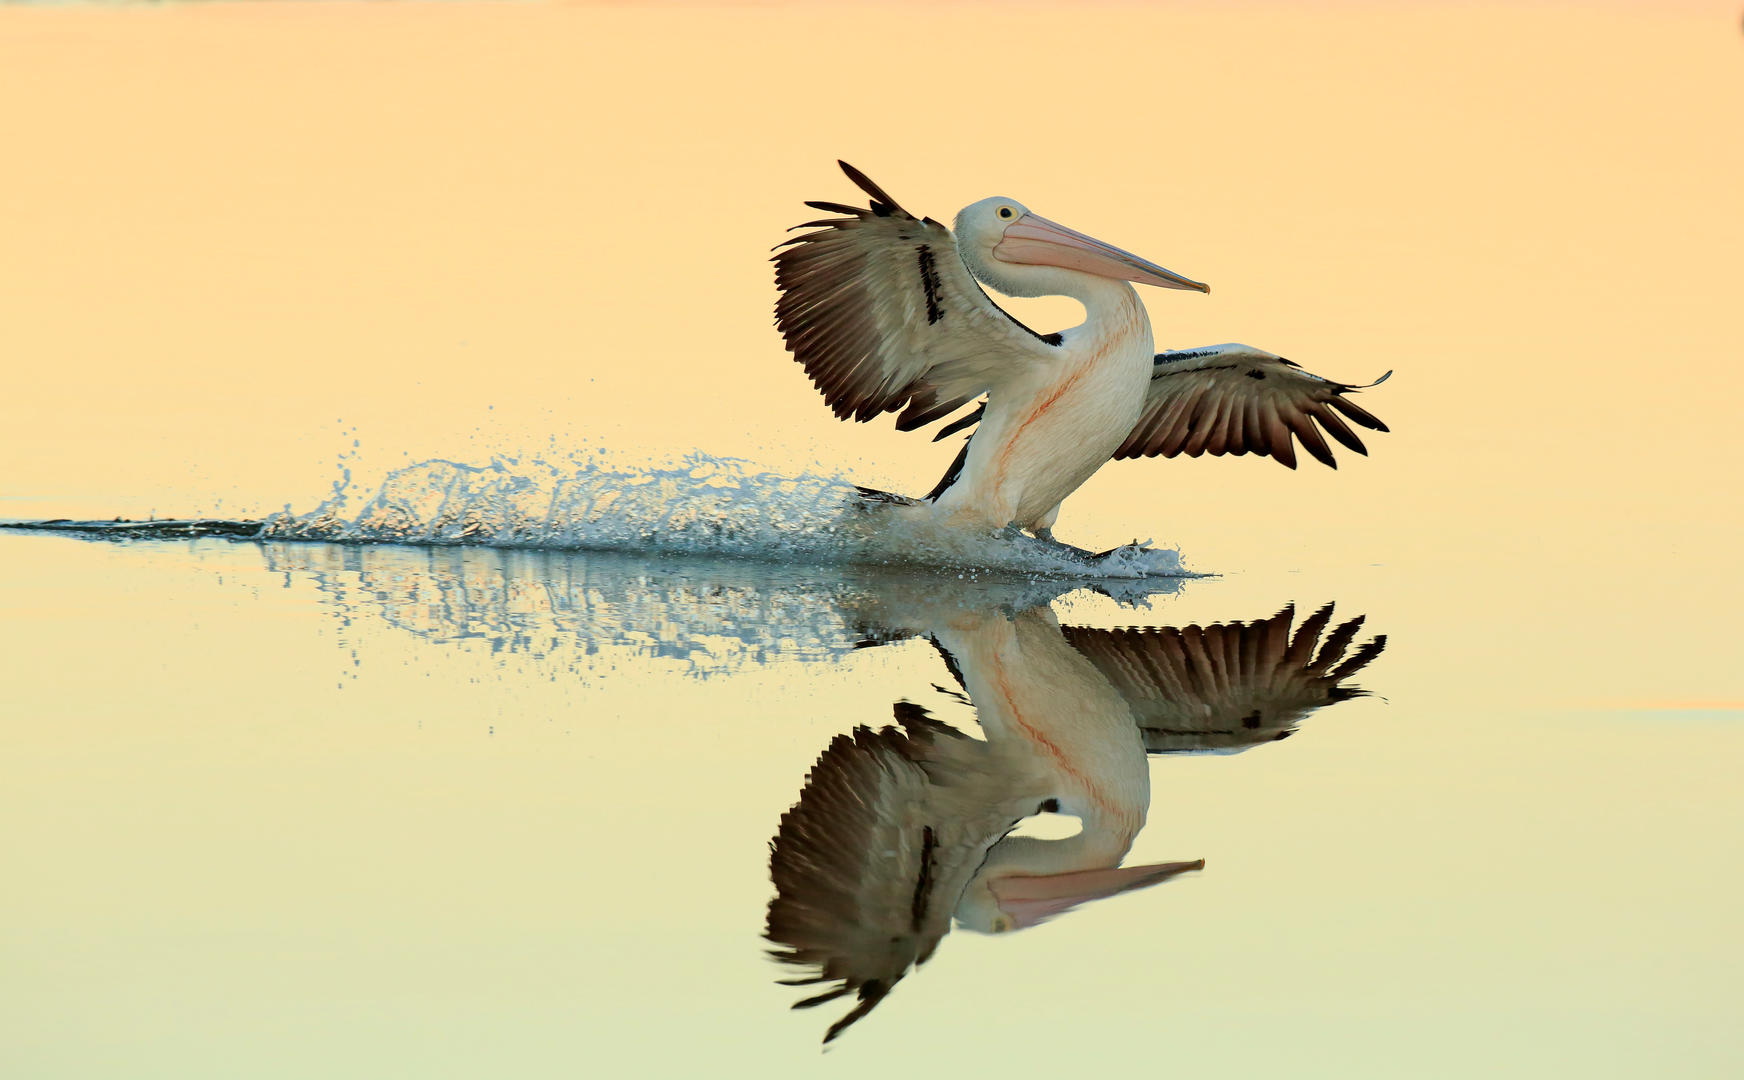 Birds in Flight, Gold. Australian Pelican landing on water by Bret Charman